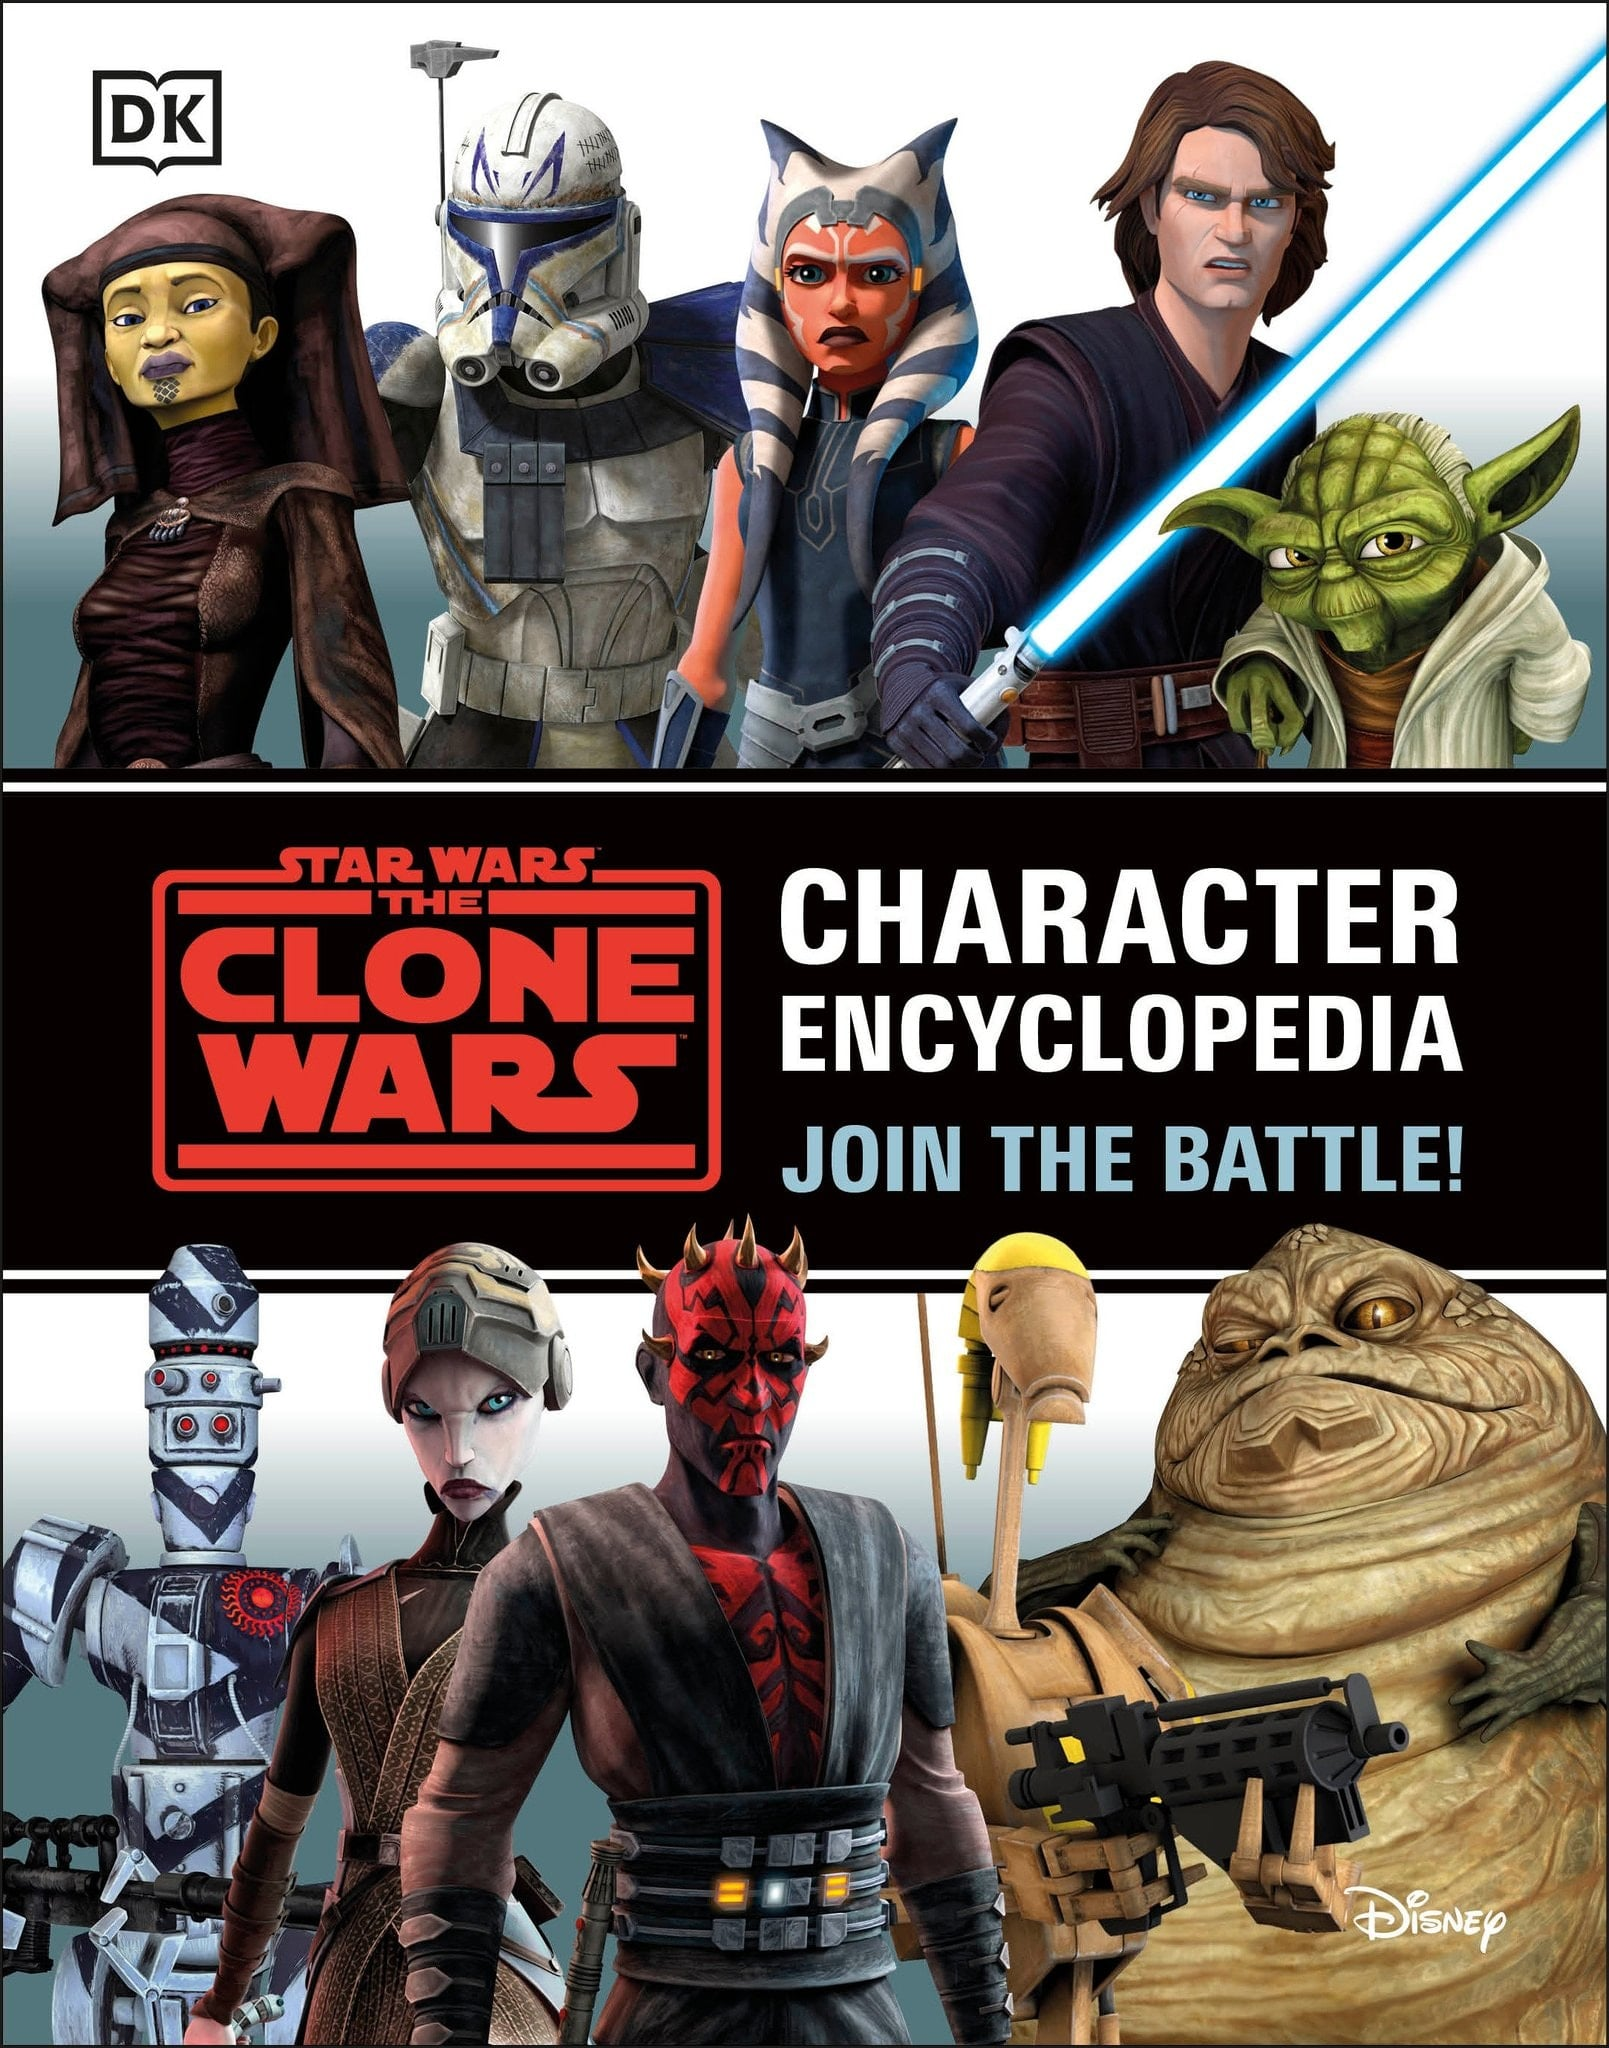 Star Wars: The Clone Wars Character Encyclopedia - Join The Battle